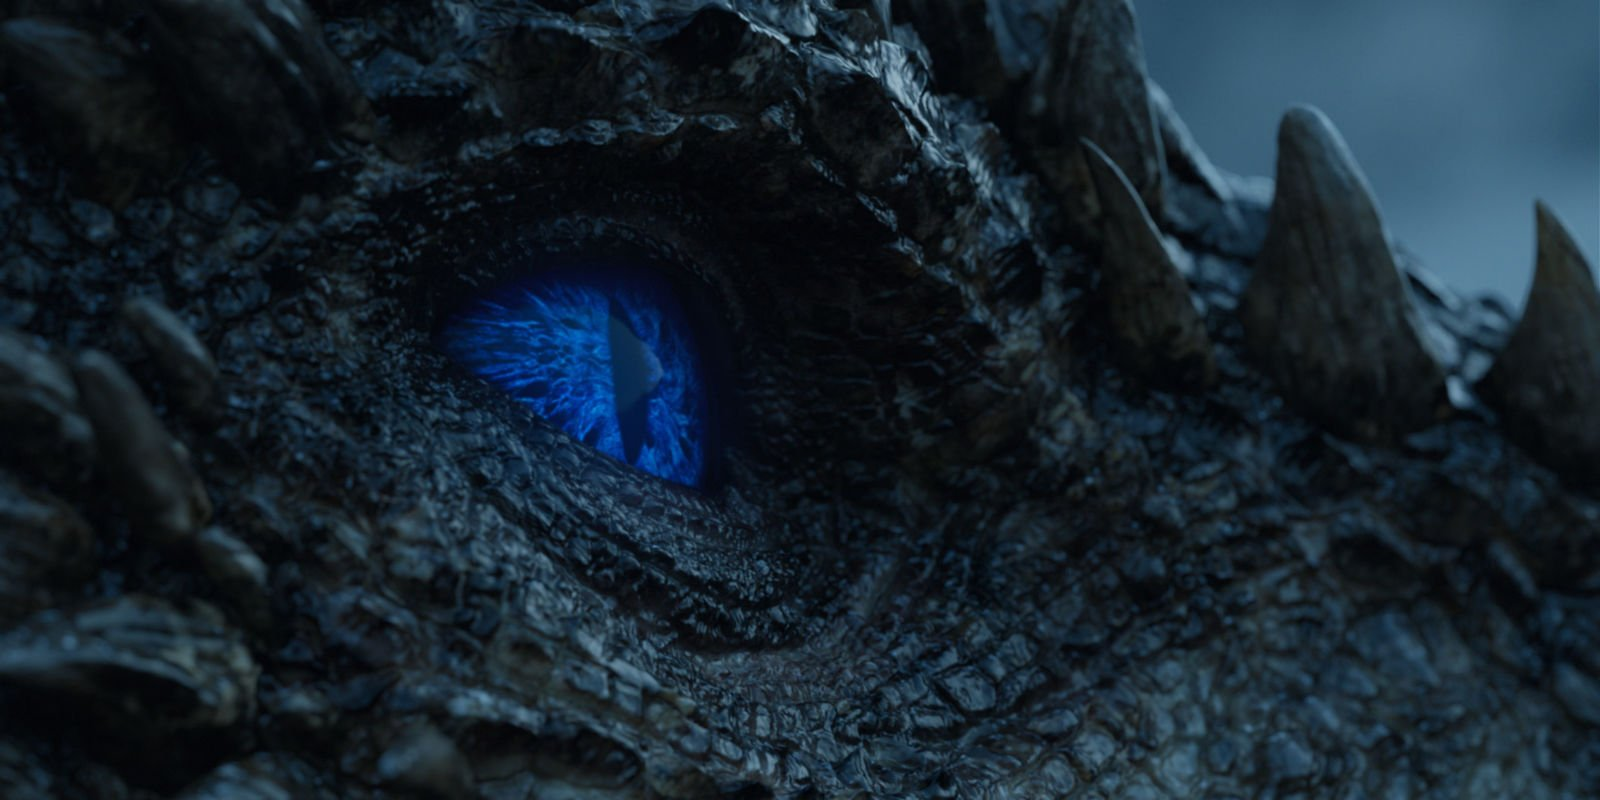 Game of Thrones' George R. R. Martin is turning his Ice Dragon book into a movie